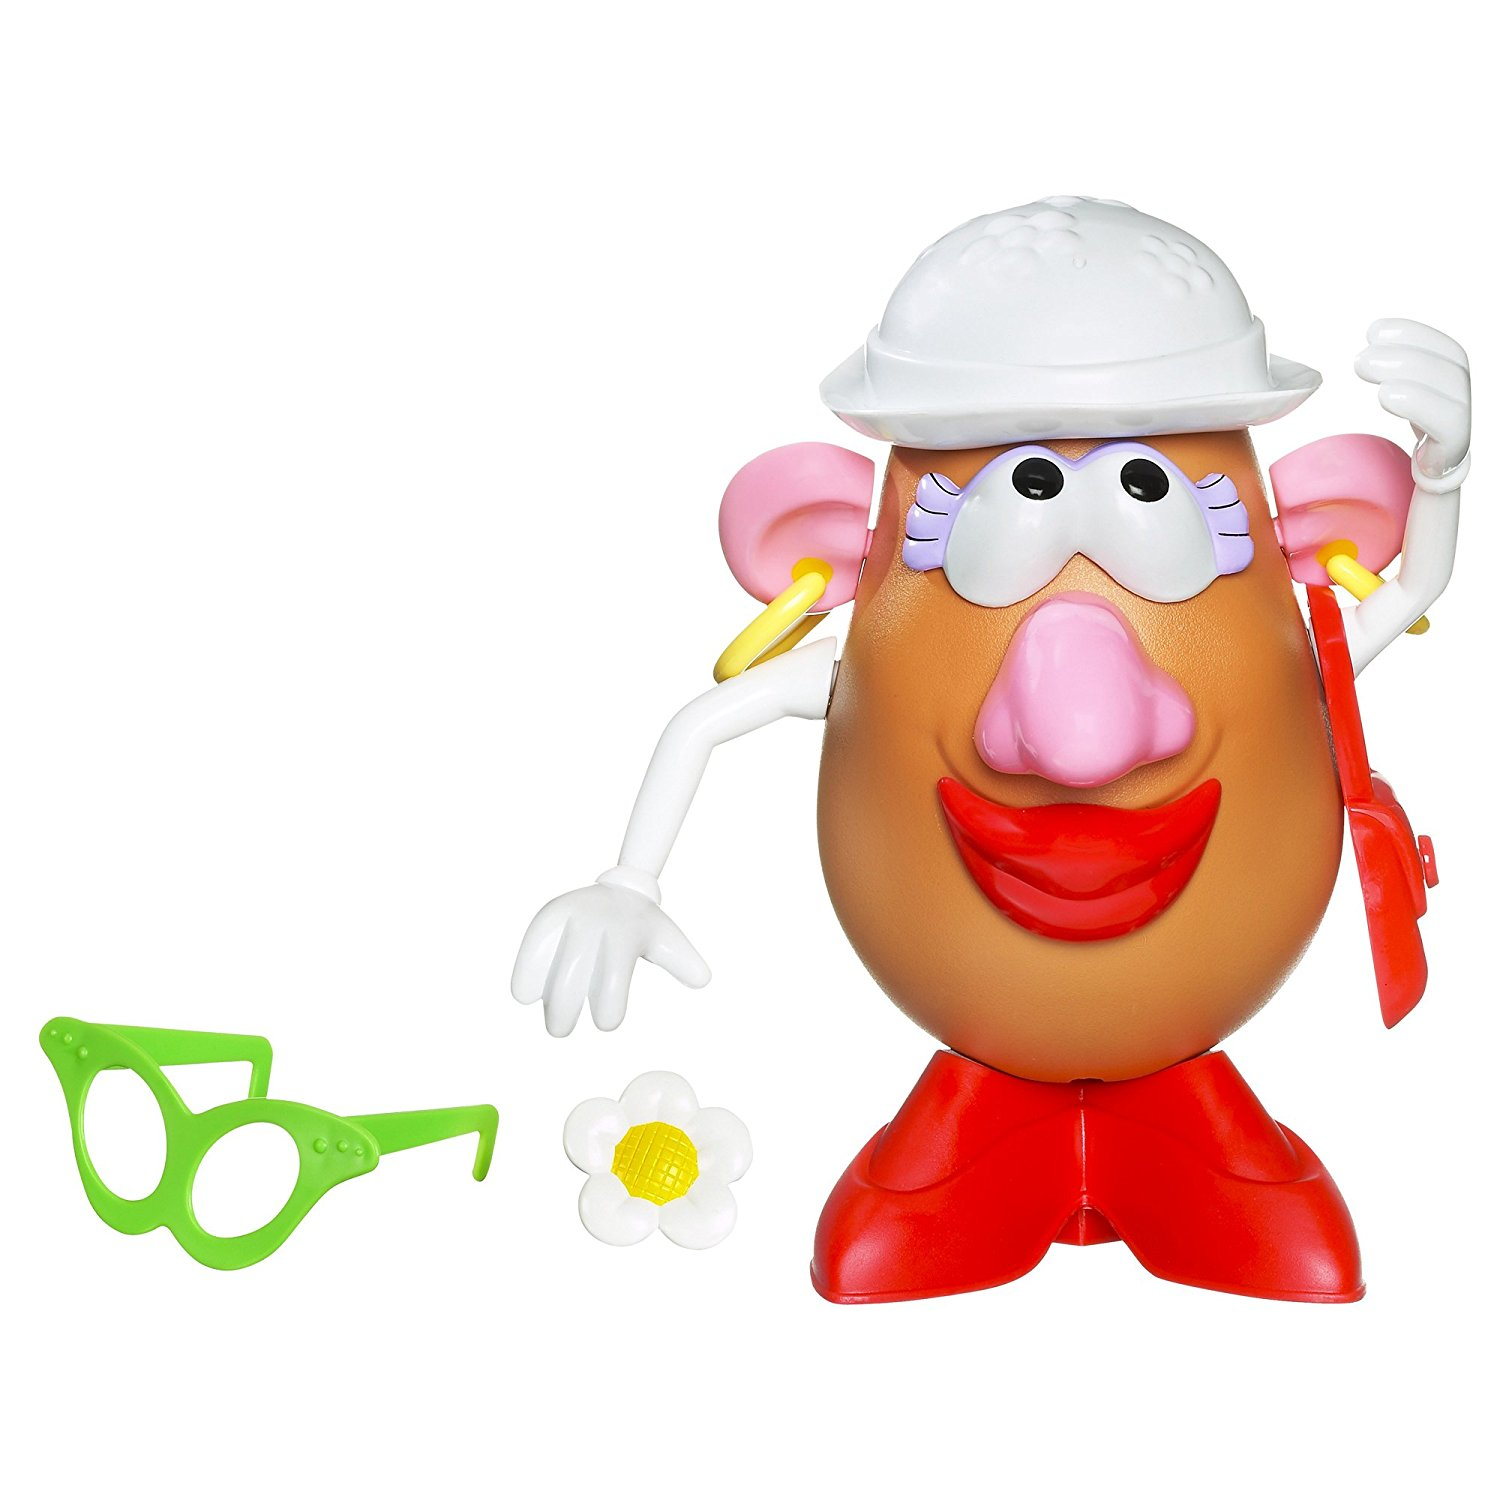 Playskool Toy Story 3 Classic Mrs. Potato Head..., By Mr Potato Head Ship from US by